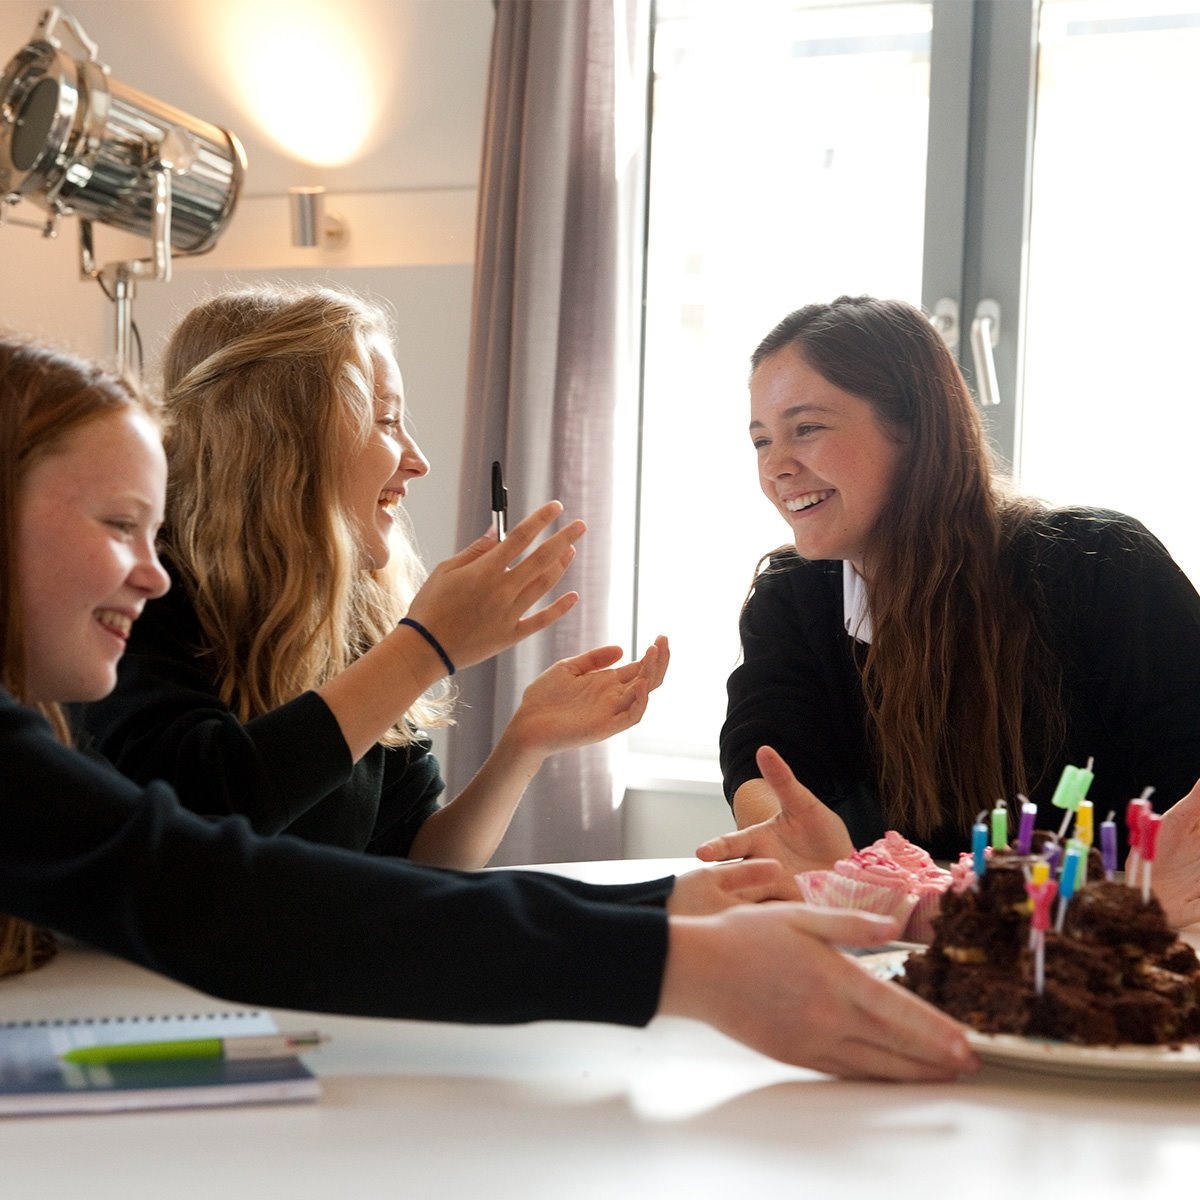 Girls-boarding-with-birthday-cake.jpg